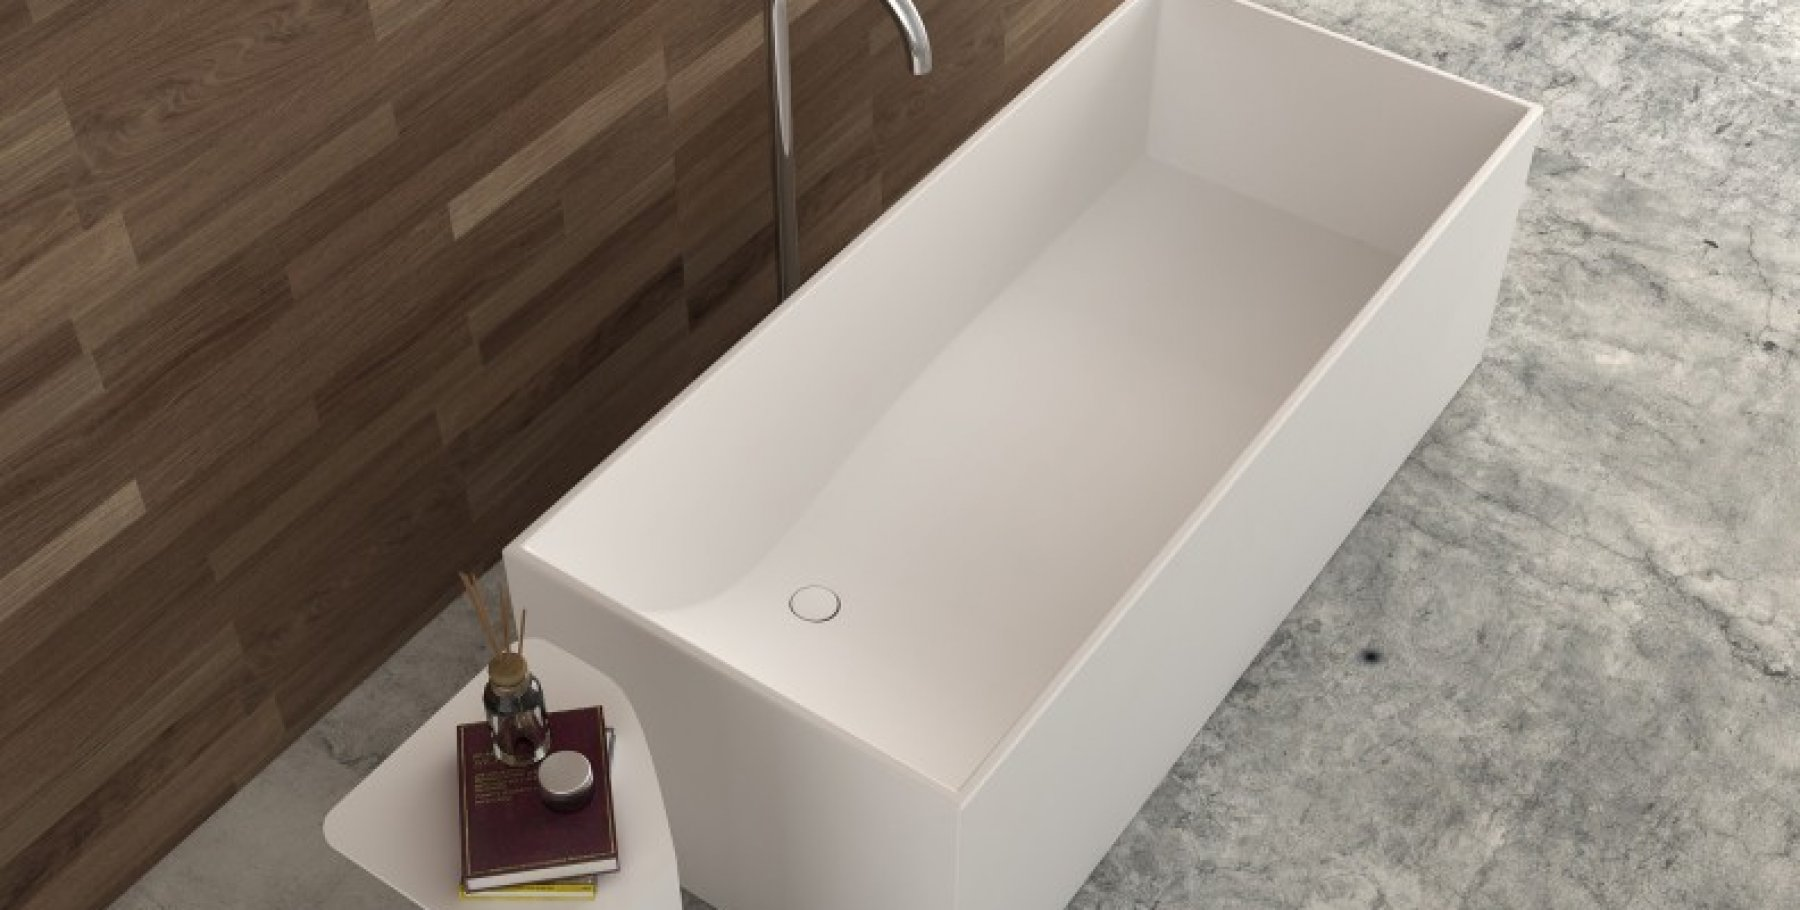 A luxury escape lisa scholtens on bathroom trends new for Bathroom trends new zealand